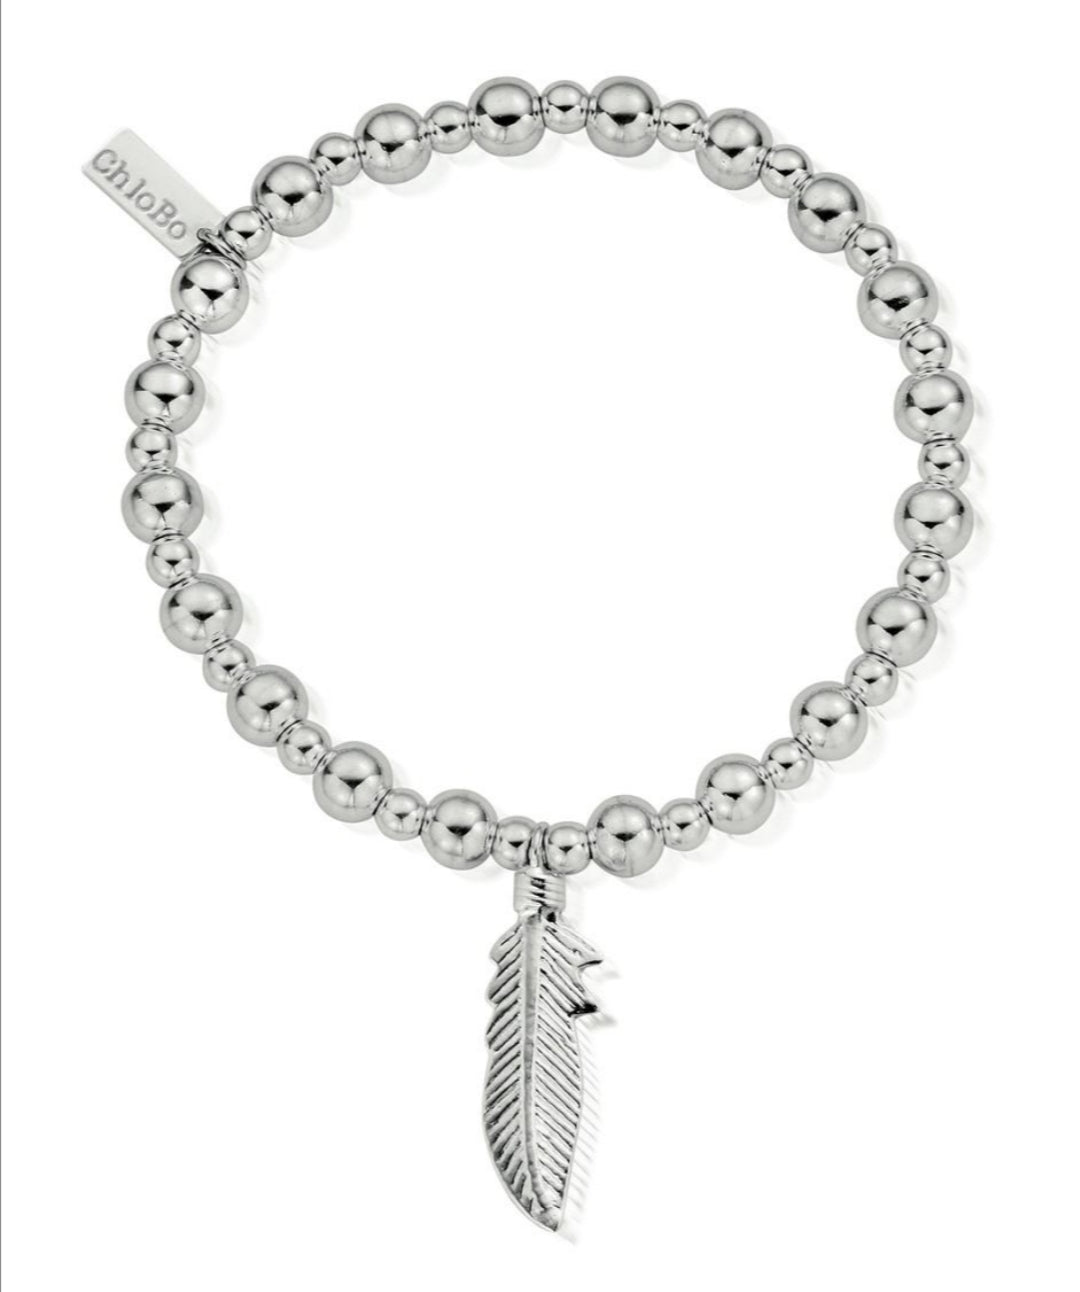 Chlobo mini small ball feather bracelet